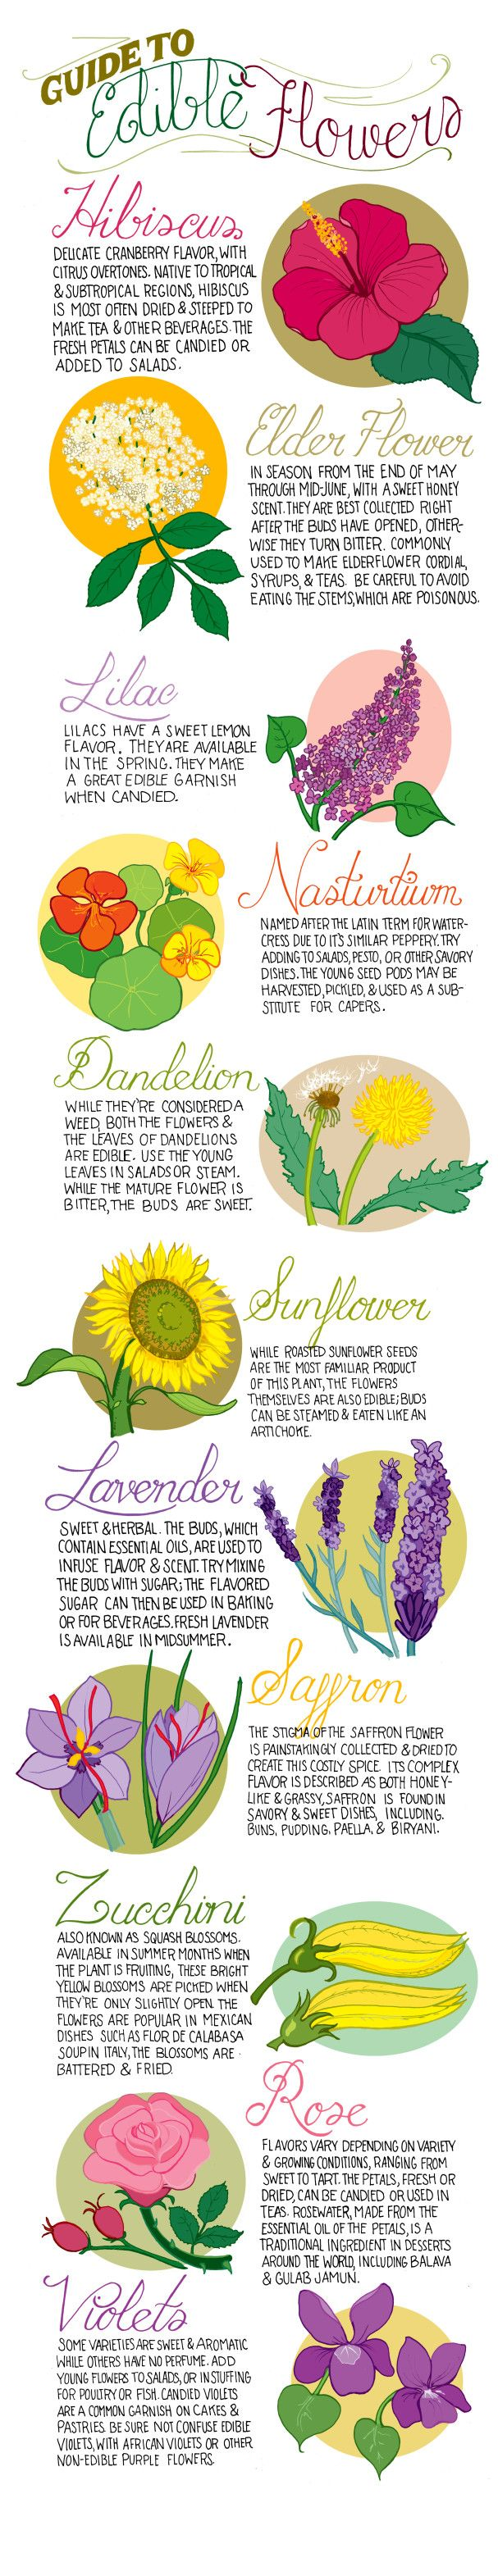 Edible Flowers Chart: Always use ORGANIC - ones that have zero chemicals sprayed on them.